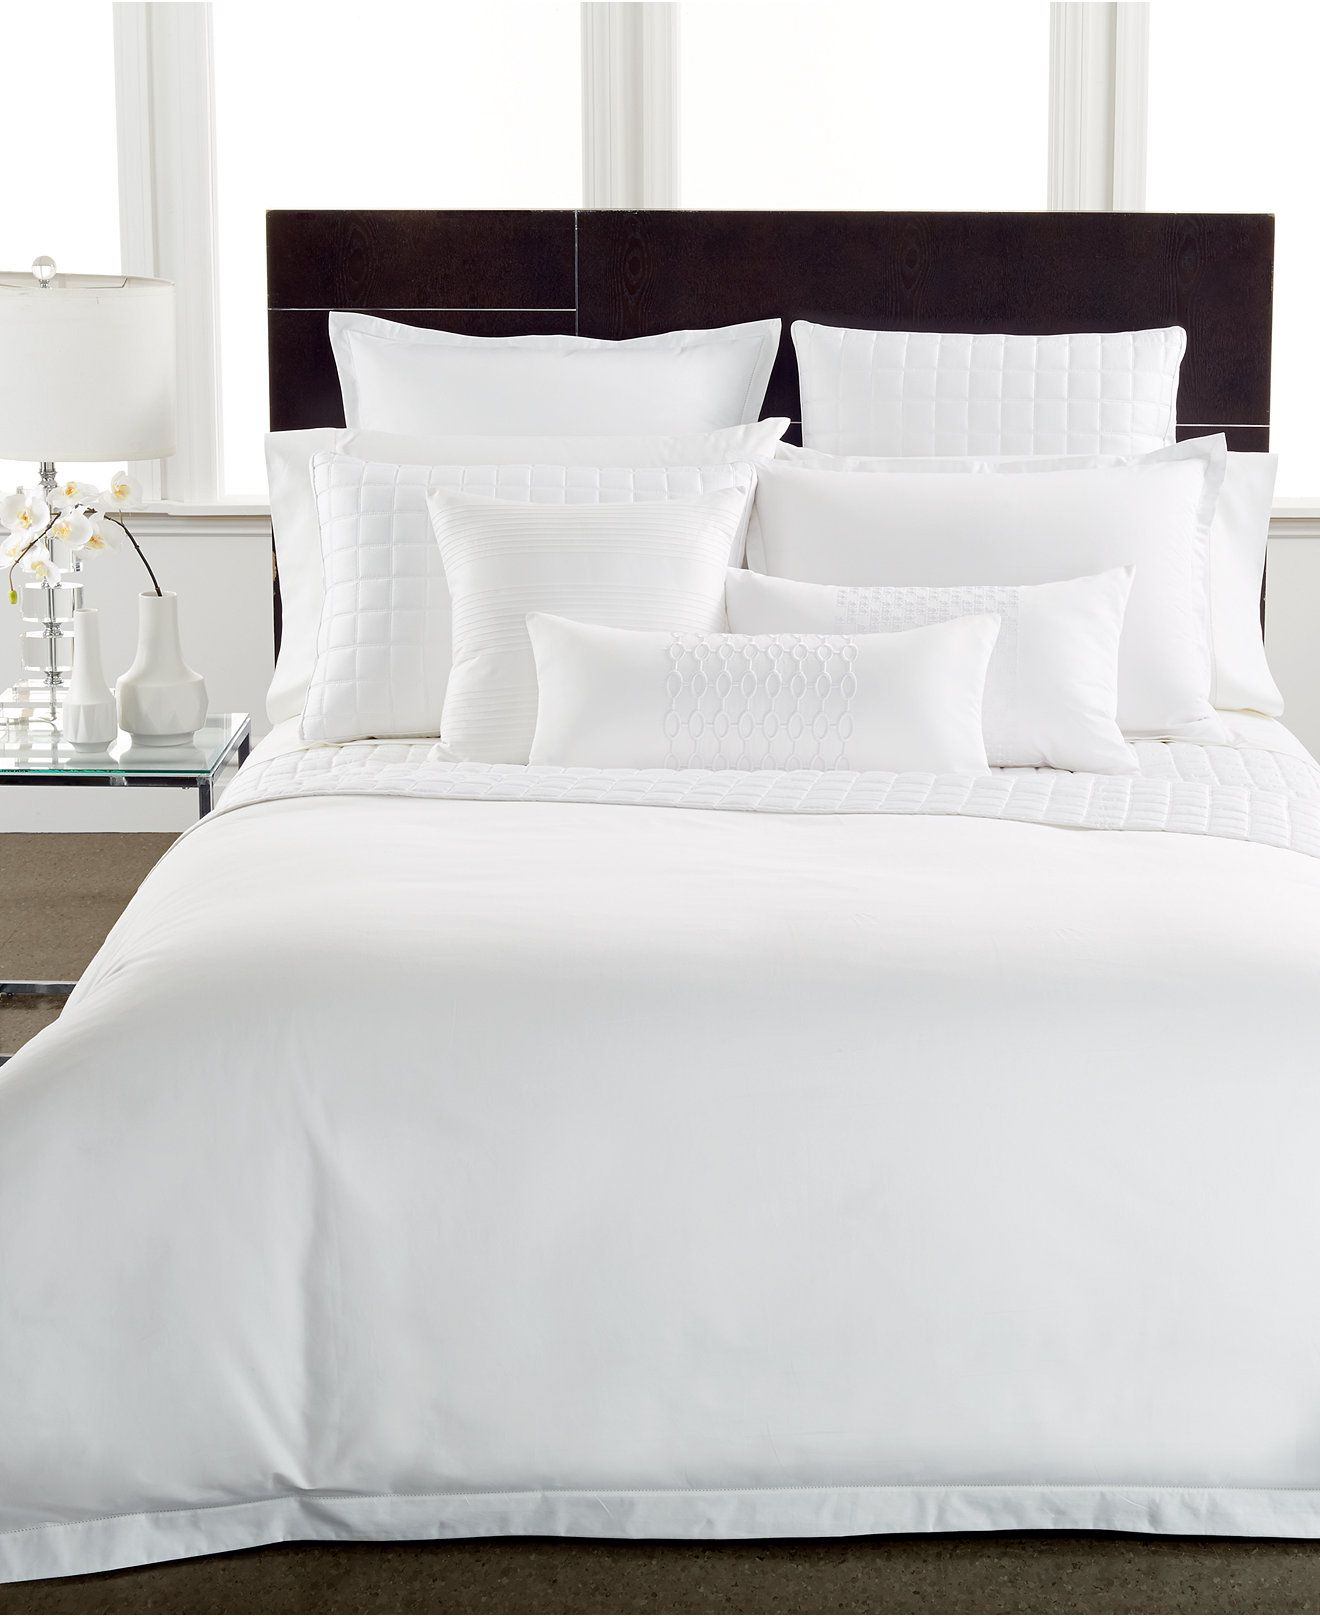 Hotel Bedding hotel collection 600 thread count egyptian cotton bedding